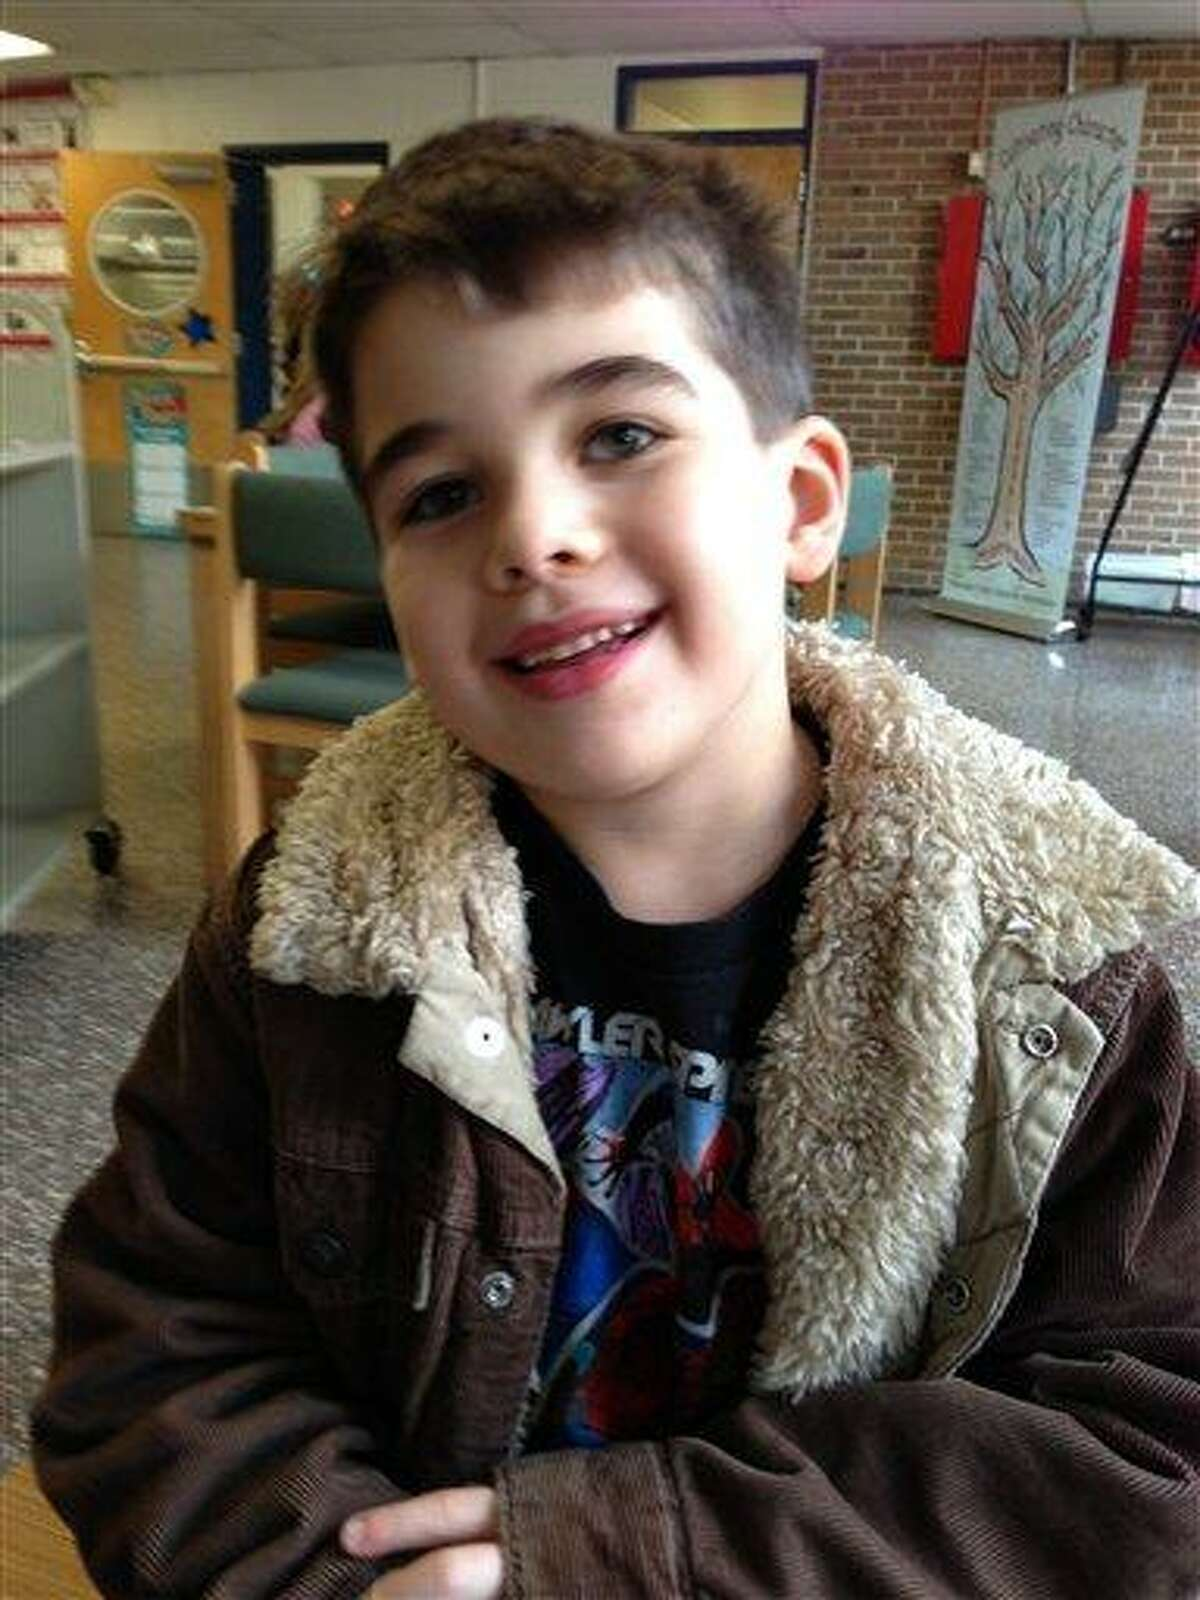 This Nov. 13, 2012 photo provided by the family via The Washington Post shows Noah Pozner. The six-year-old was one of the victims in the Sandy Hook elementary school shooting in Newtown, Conn. on Dec. 14, 2012. (AP Photo/Family Photo)